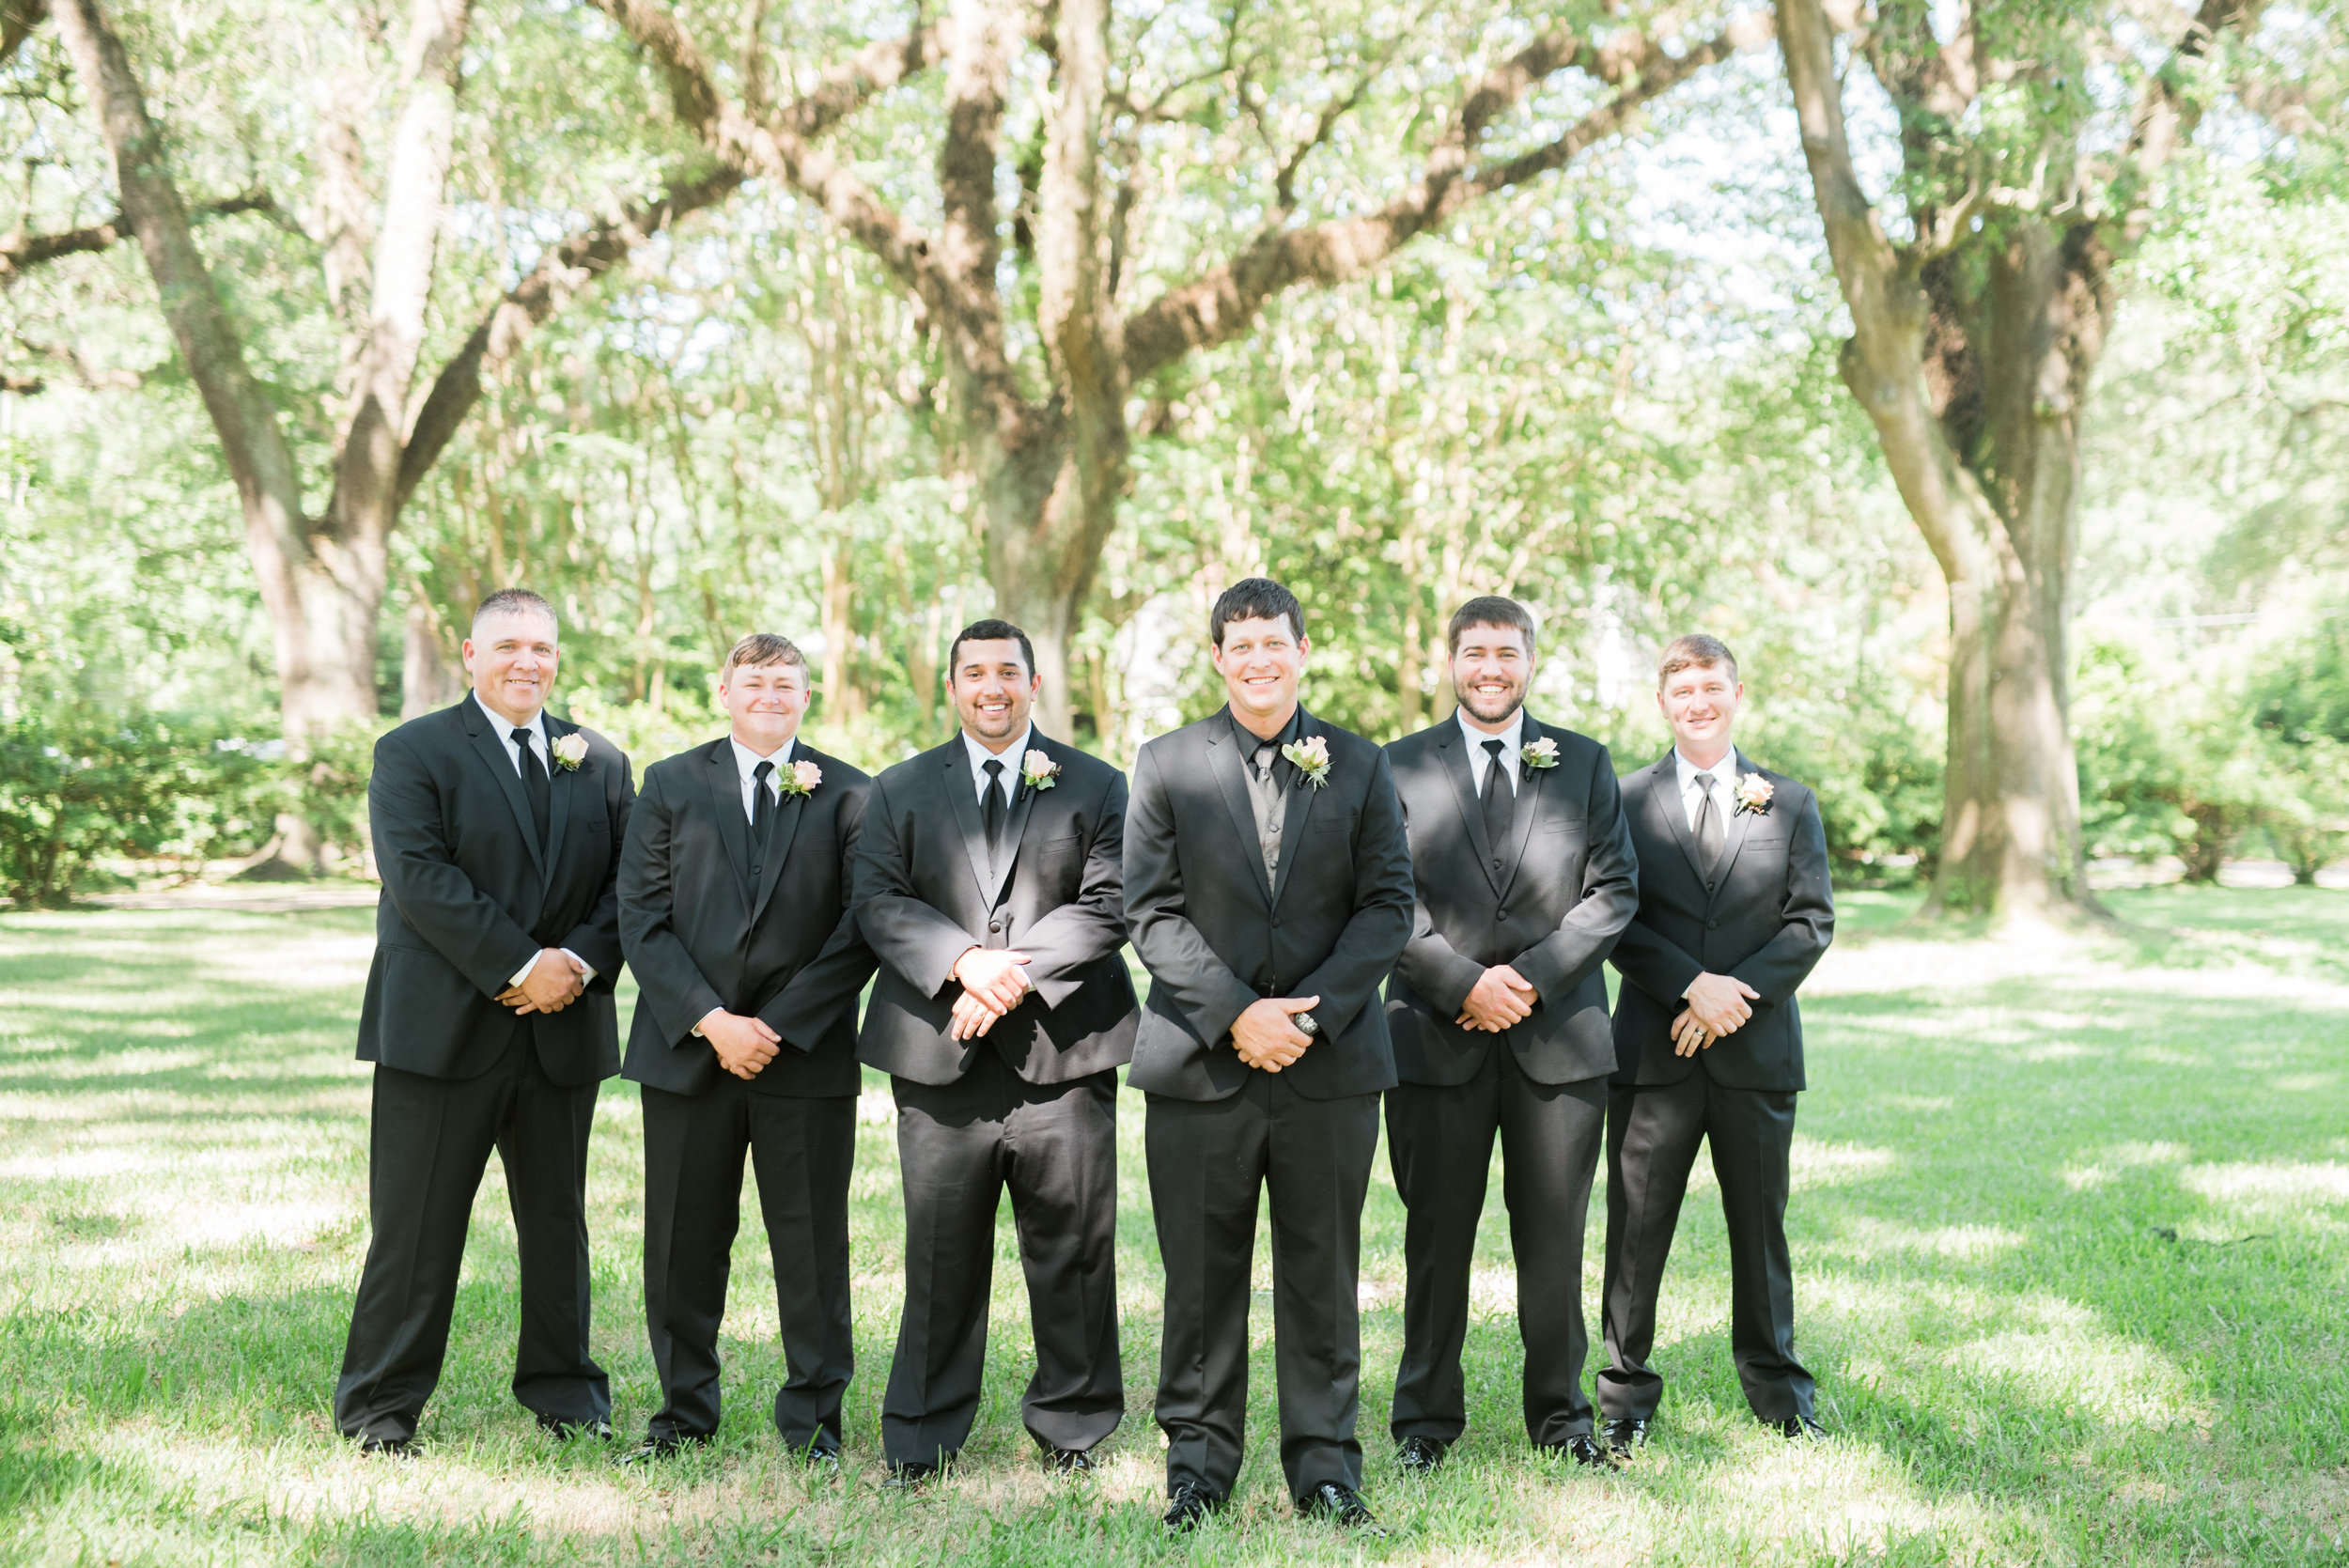 Alyssa and Heath Wedding Groomsmen at the Bragg Mitchell Mansion in Mobile, Alabama on May  25th, 2019